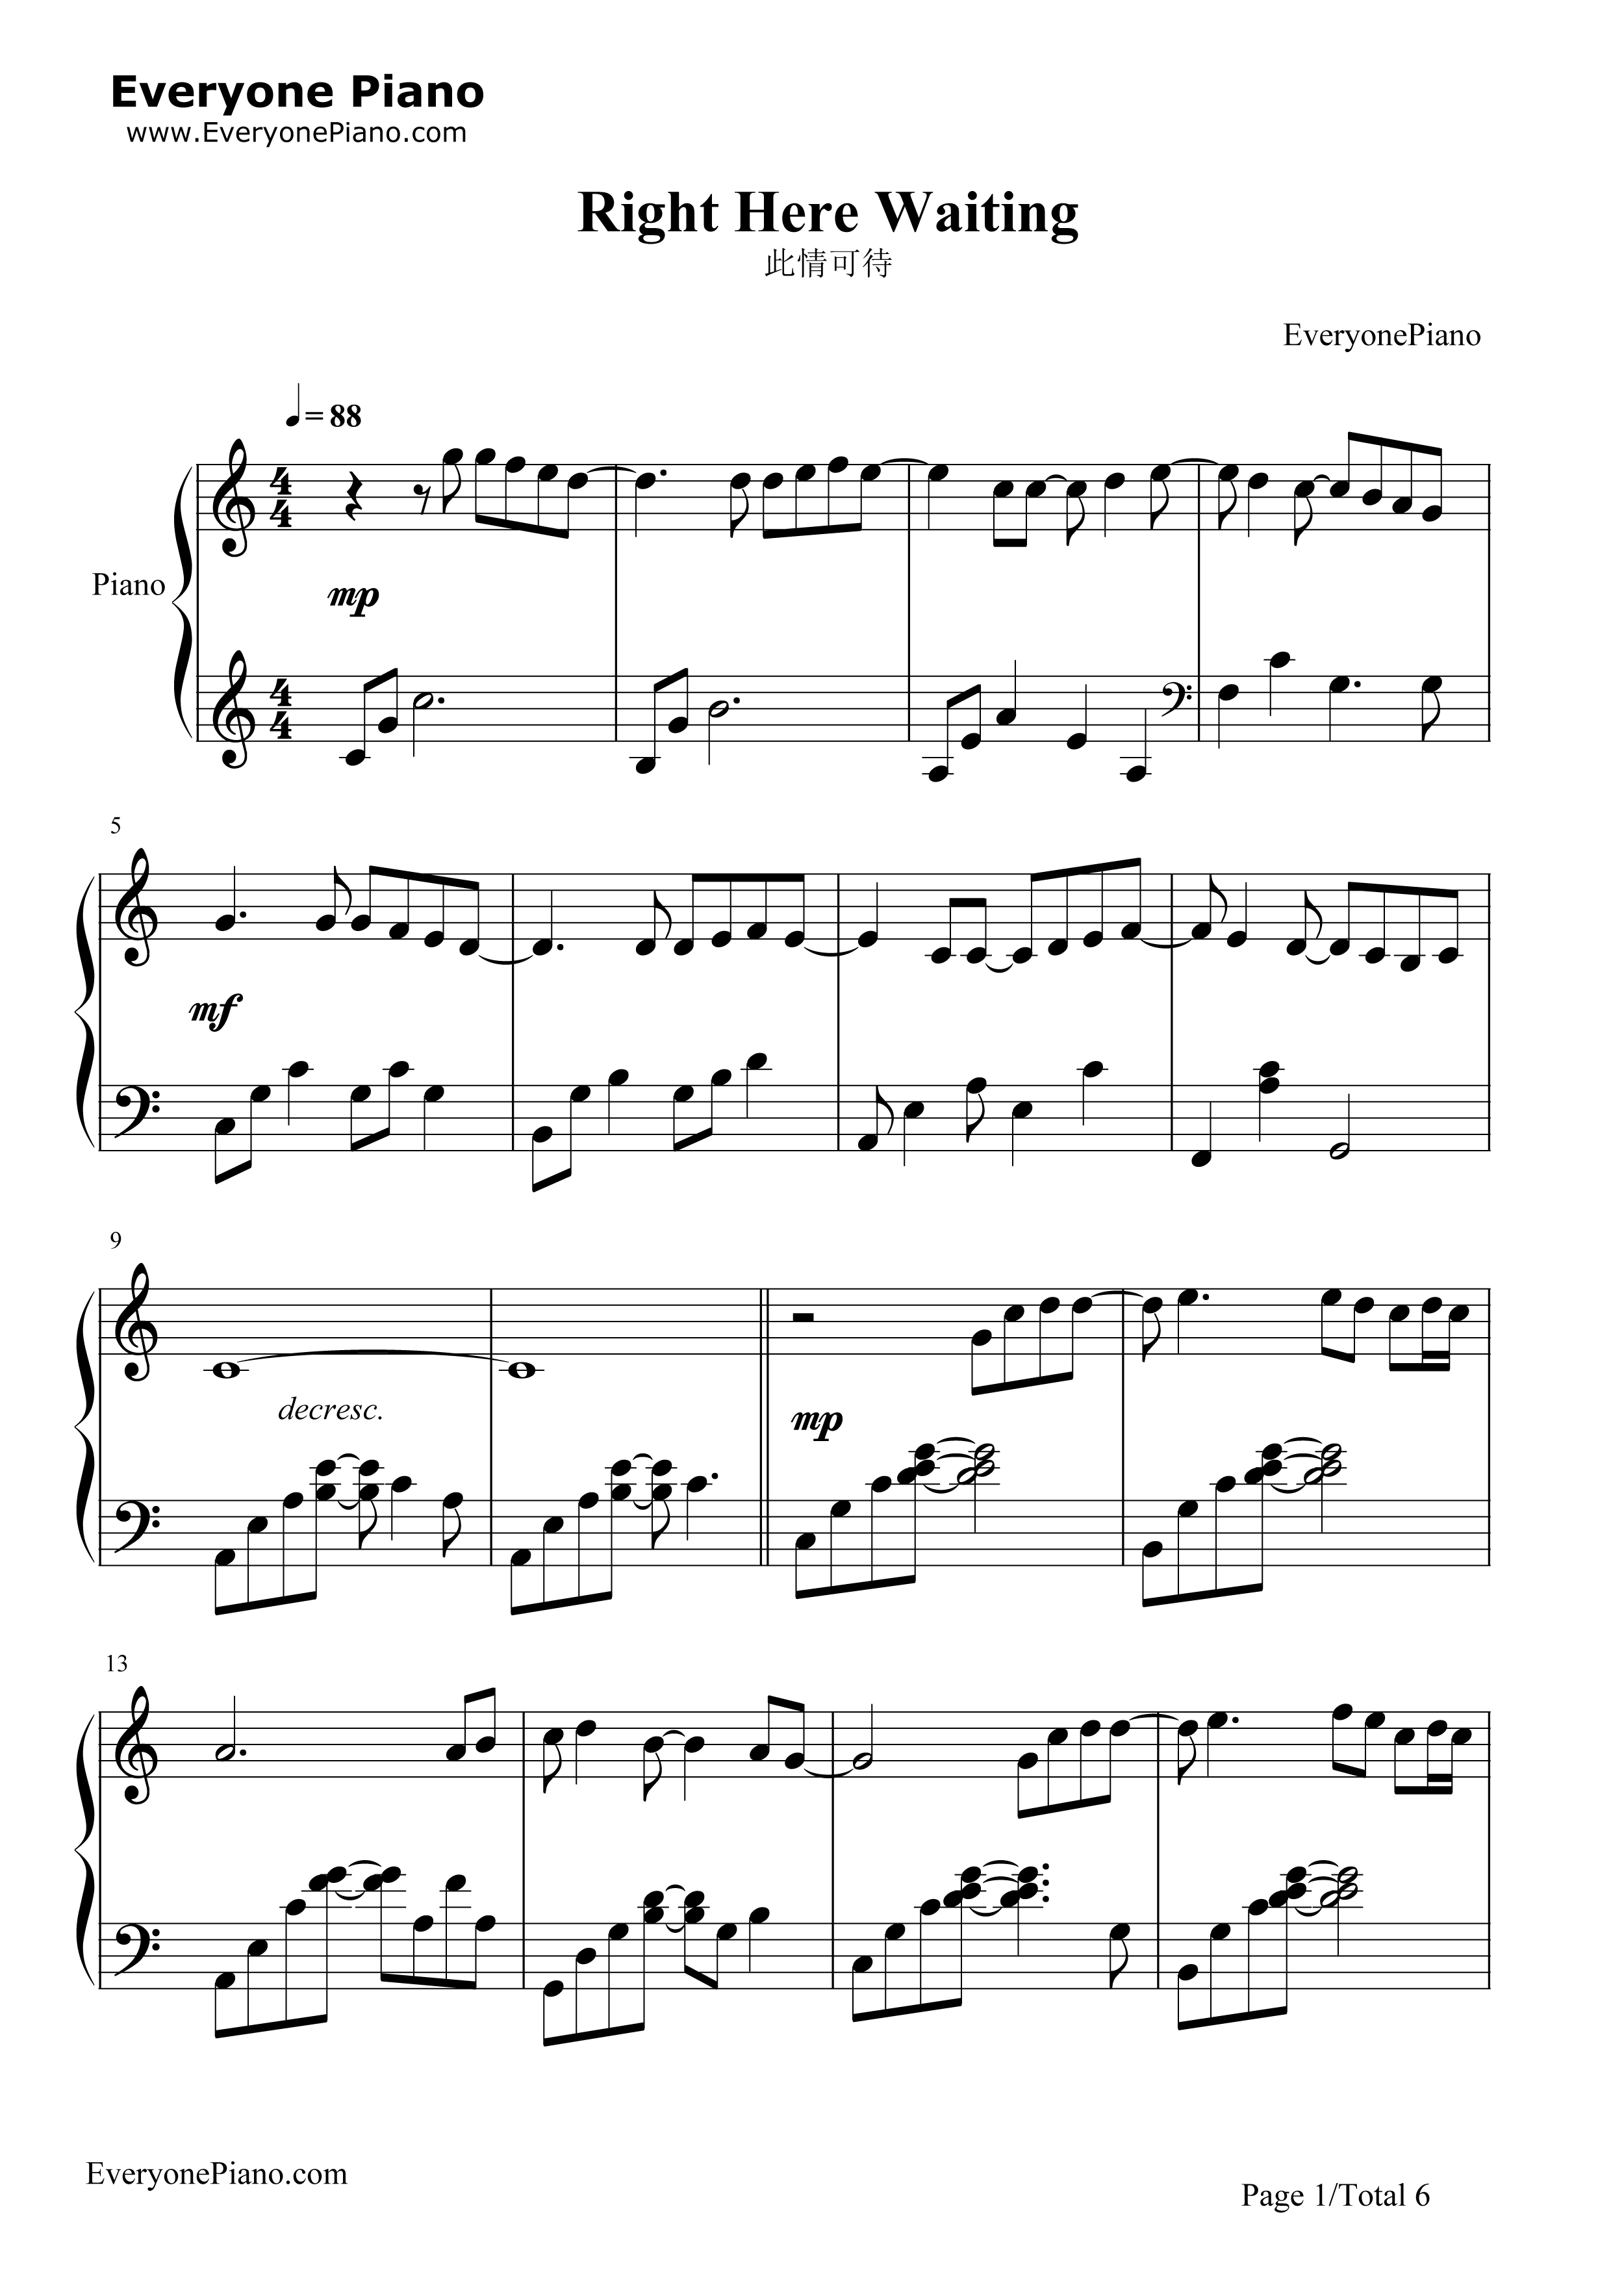 Right Here Waiting Stave Preview 1-Free Piano Sheet Music u0026 Piano Chords